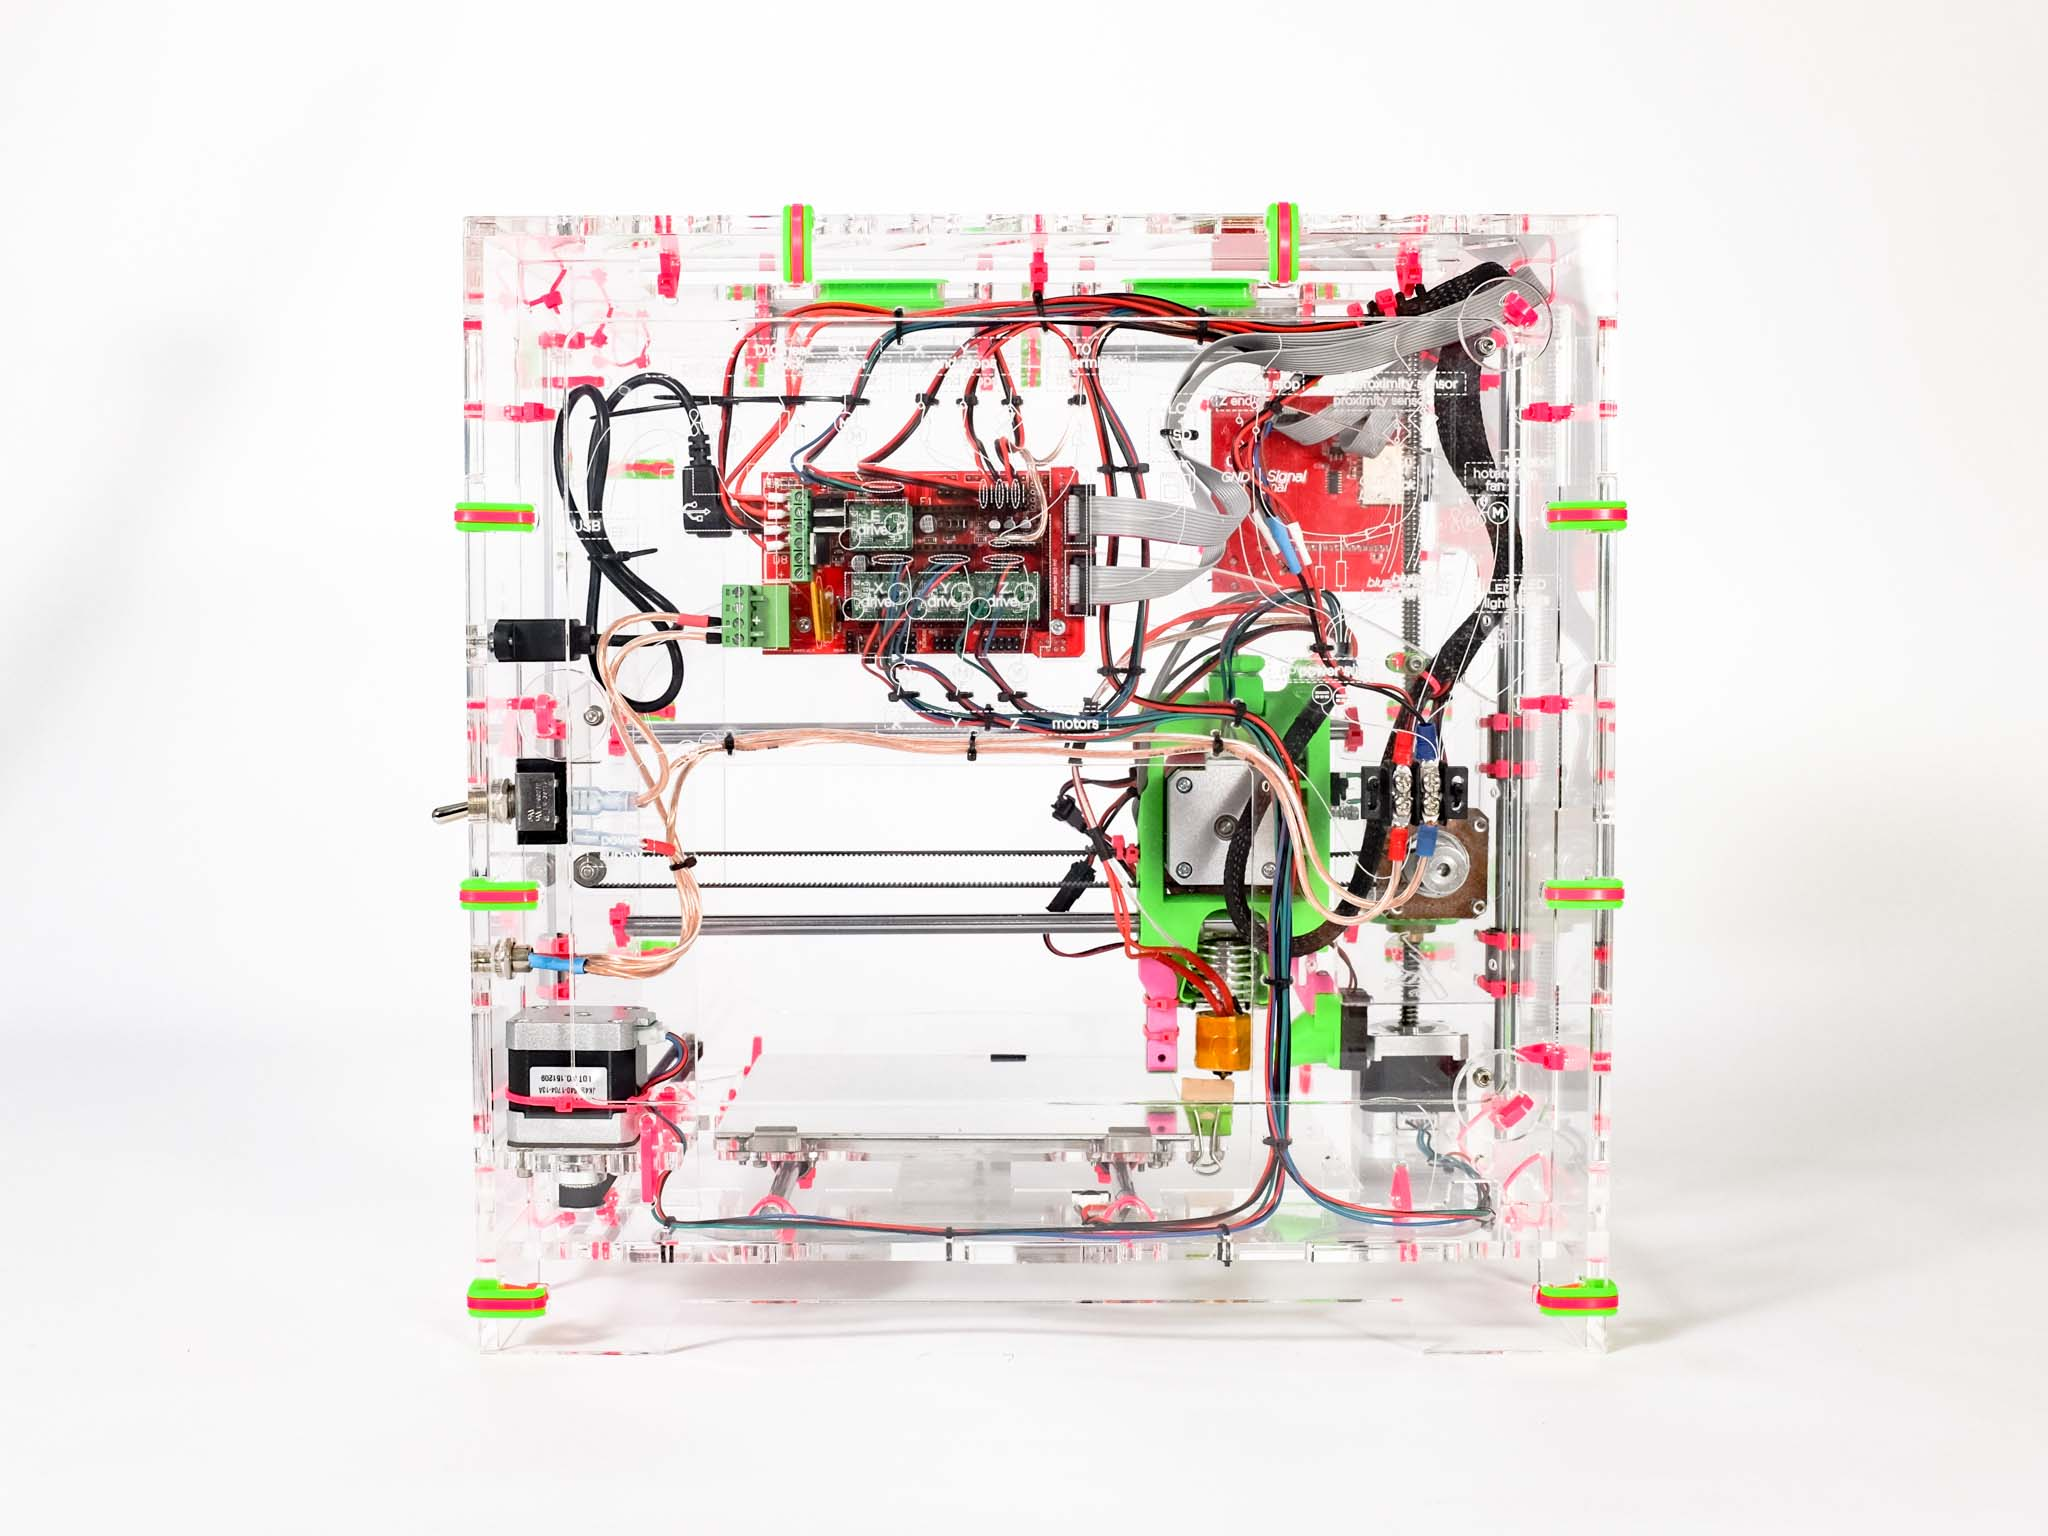 Imade3d Jellybox 3d Printer Educational Experiences In Technology Building Electric Wiring Diagram Clear Acrylic Construction To Expose The Inner Workings Its Ultimate Anti Black Box Also Did We Mention Have Best Wire Management Town